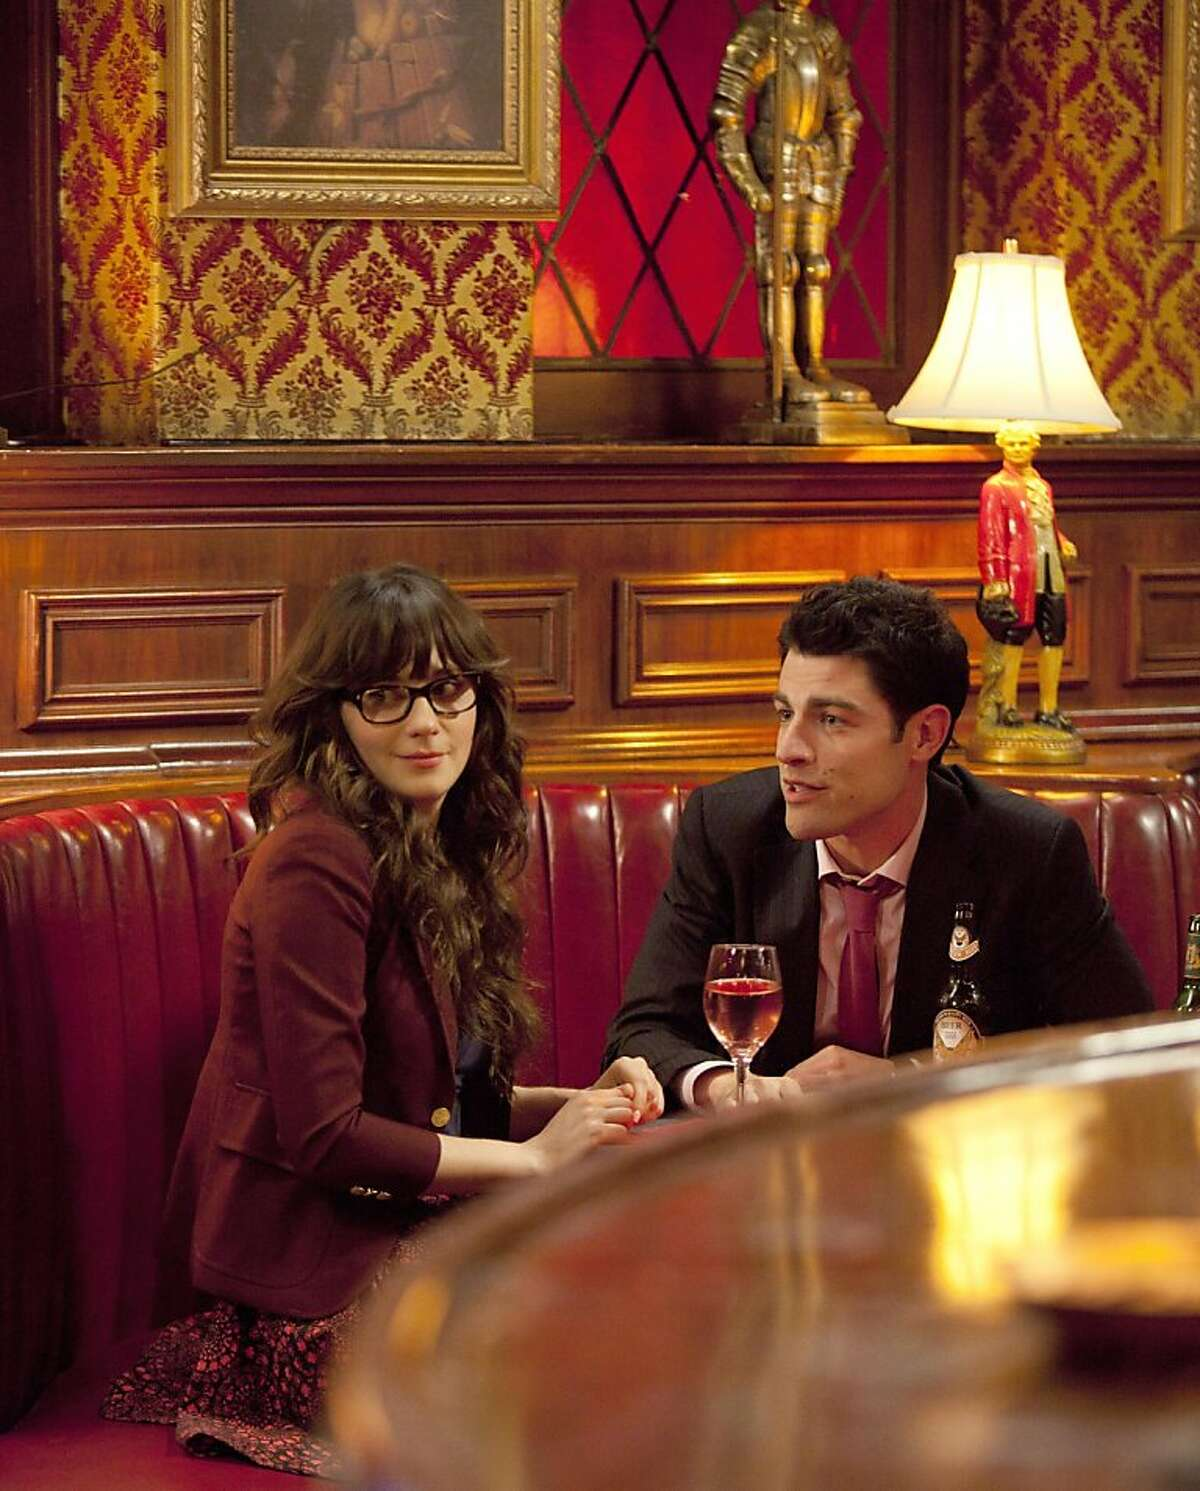 NEW GIRL: Schmidt (Max Greenfield, R) gives Jess (Zooey Deschanel, L) advice in the series premiere of NEW GIRL airing Tuesday, Sept. 20 (9:00-9:30 PM ET/PT) on FOX.